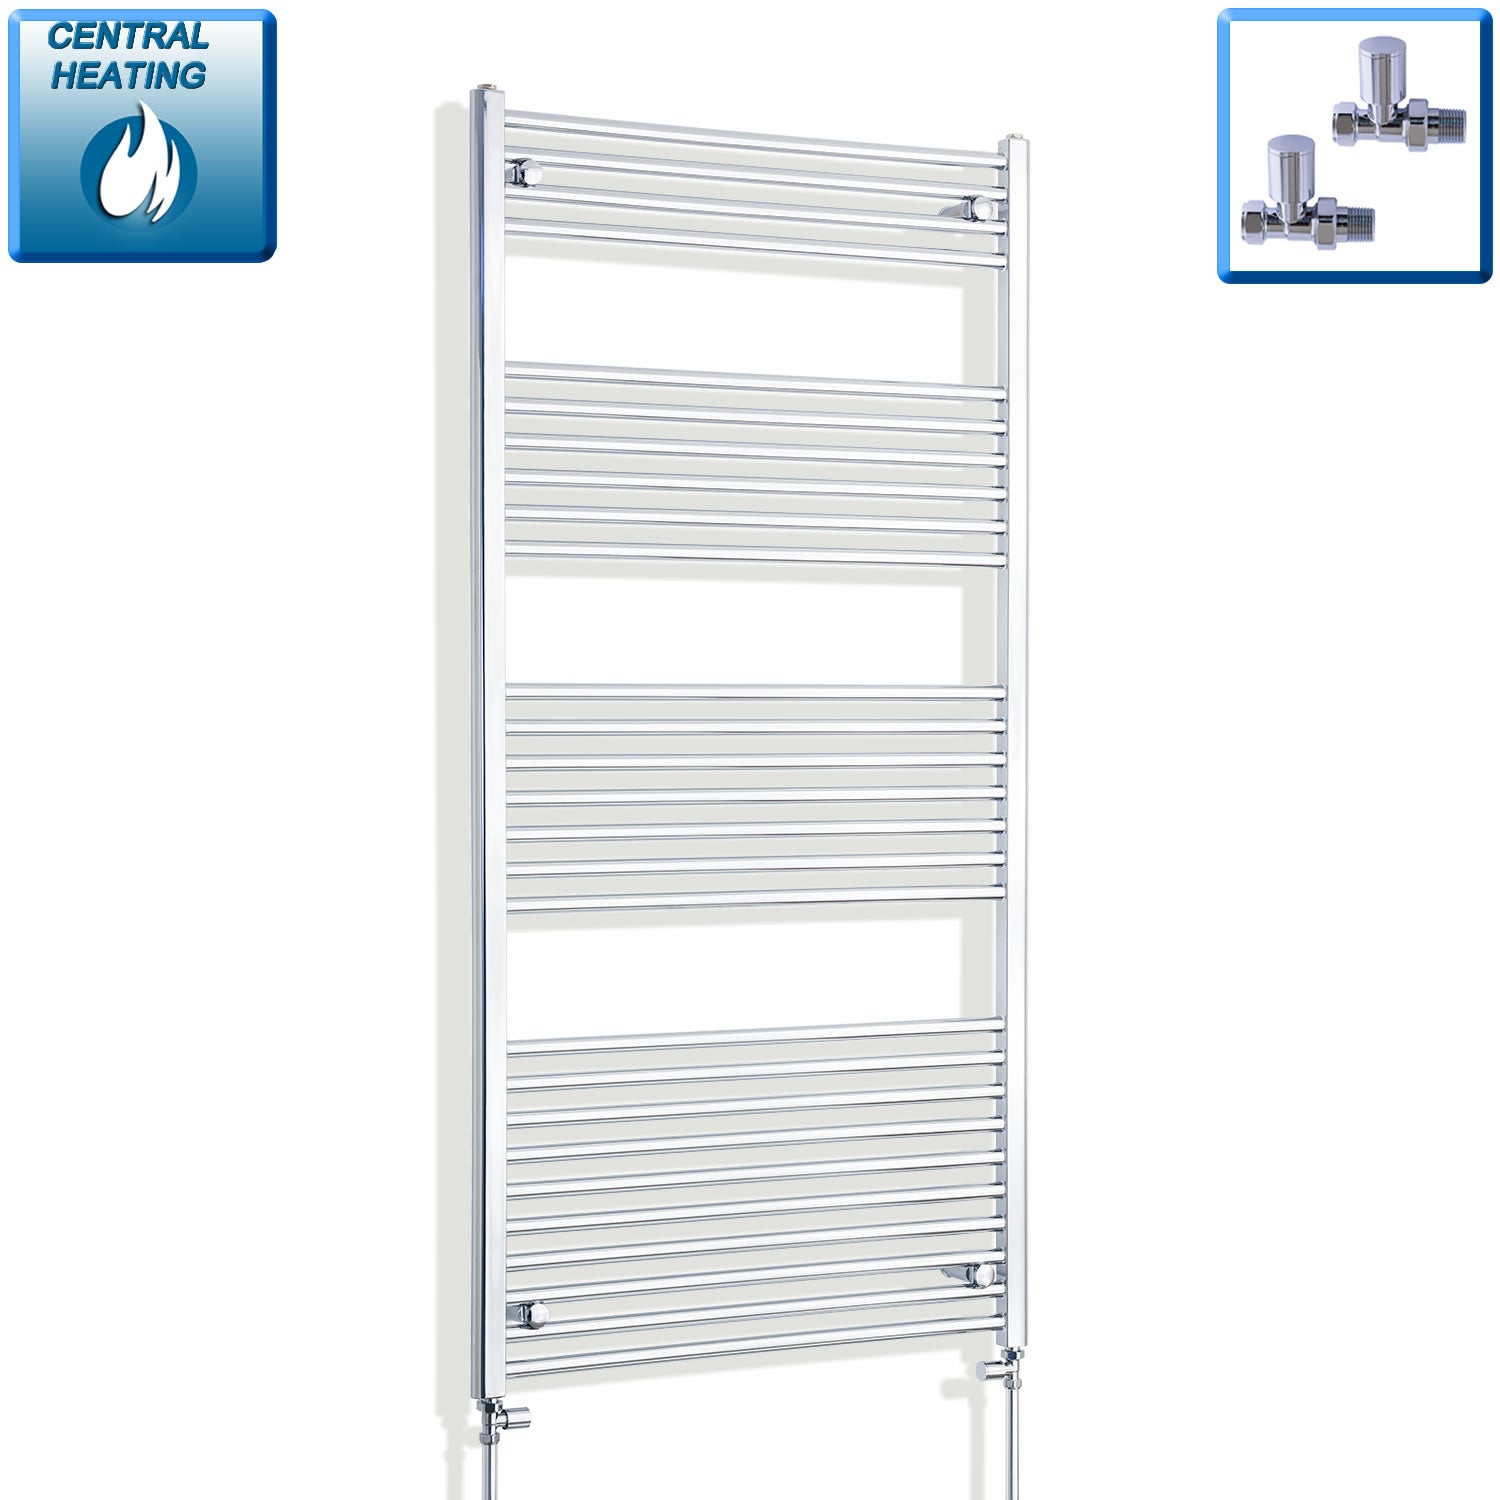 850mm Wide 1600mm High Chrome Towel Rail Radiator With Straight Valve